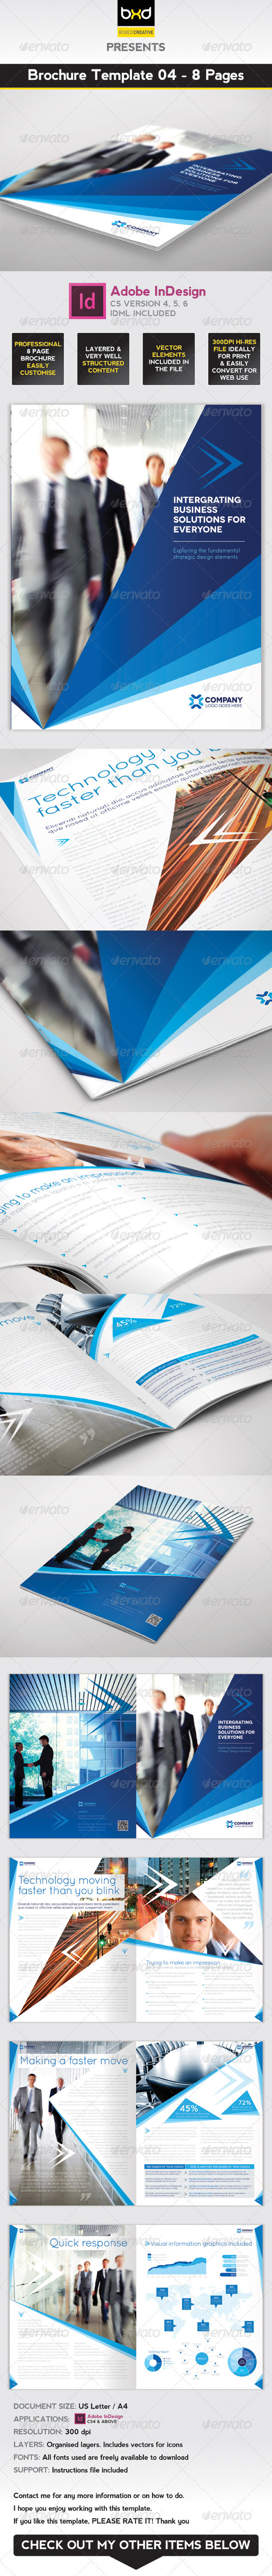 Brochure Template - InDesign 8 Page Layout 04 - Corporate Brochures